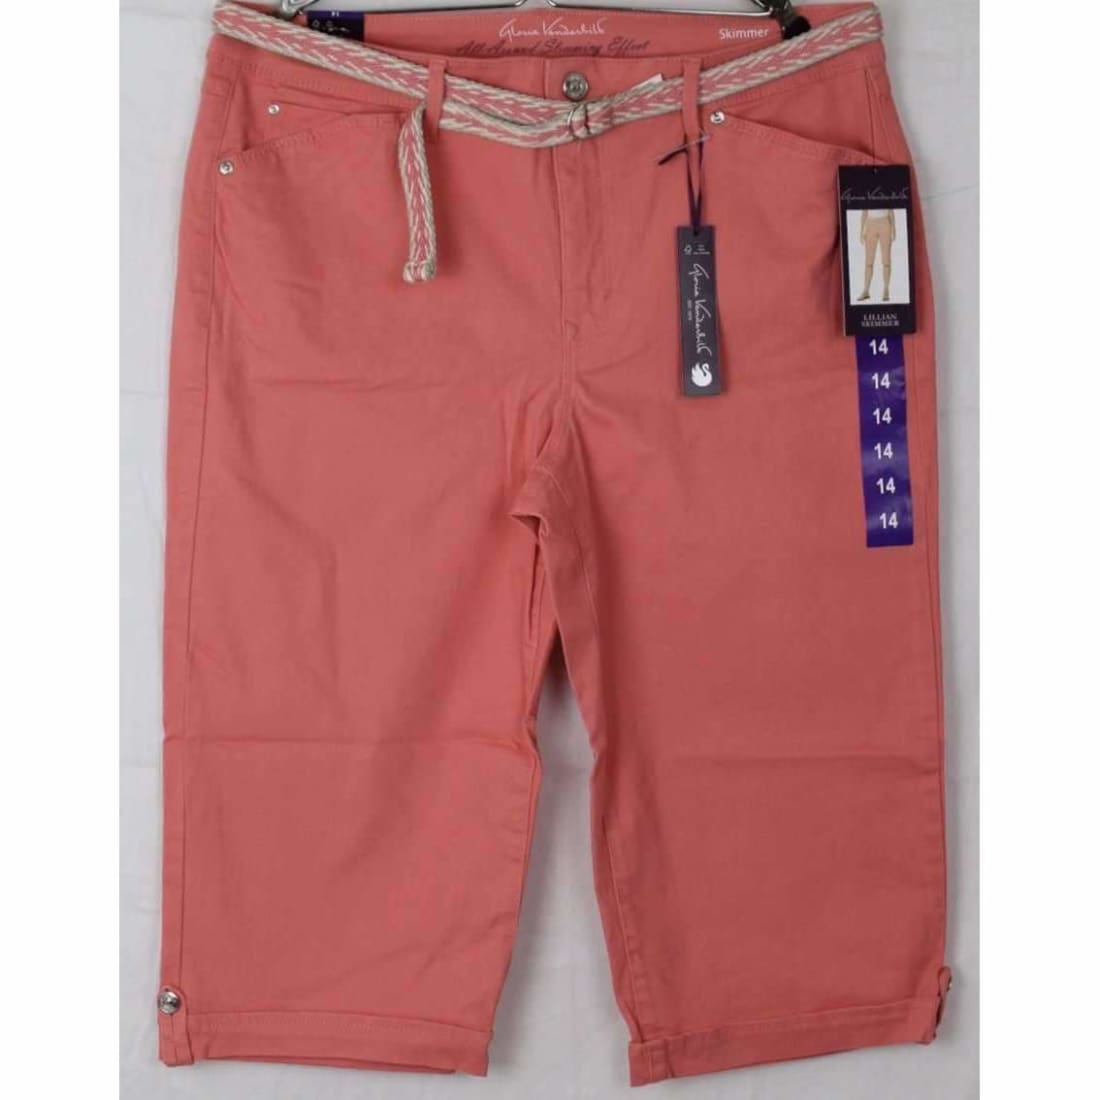 Gloria Vanderbilt Womens Belted Capri Lillian Skimmer Regular / 8 / Bright Hibiscus Pants & Shorts